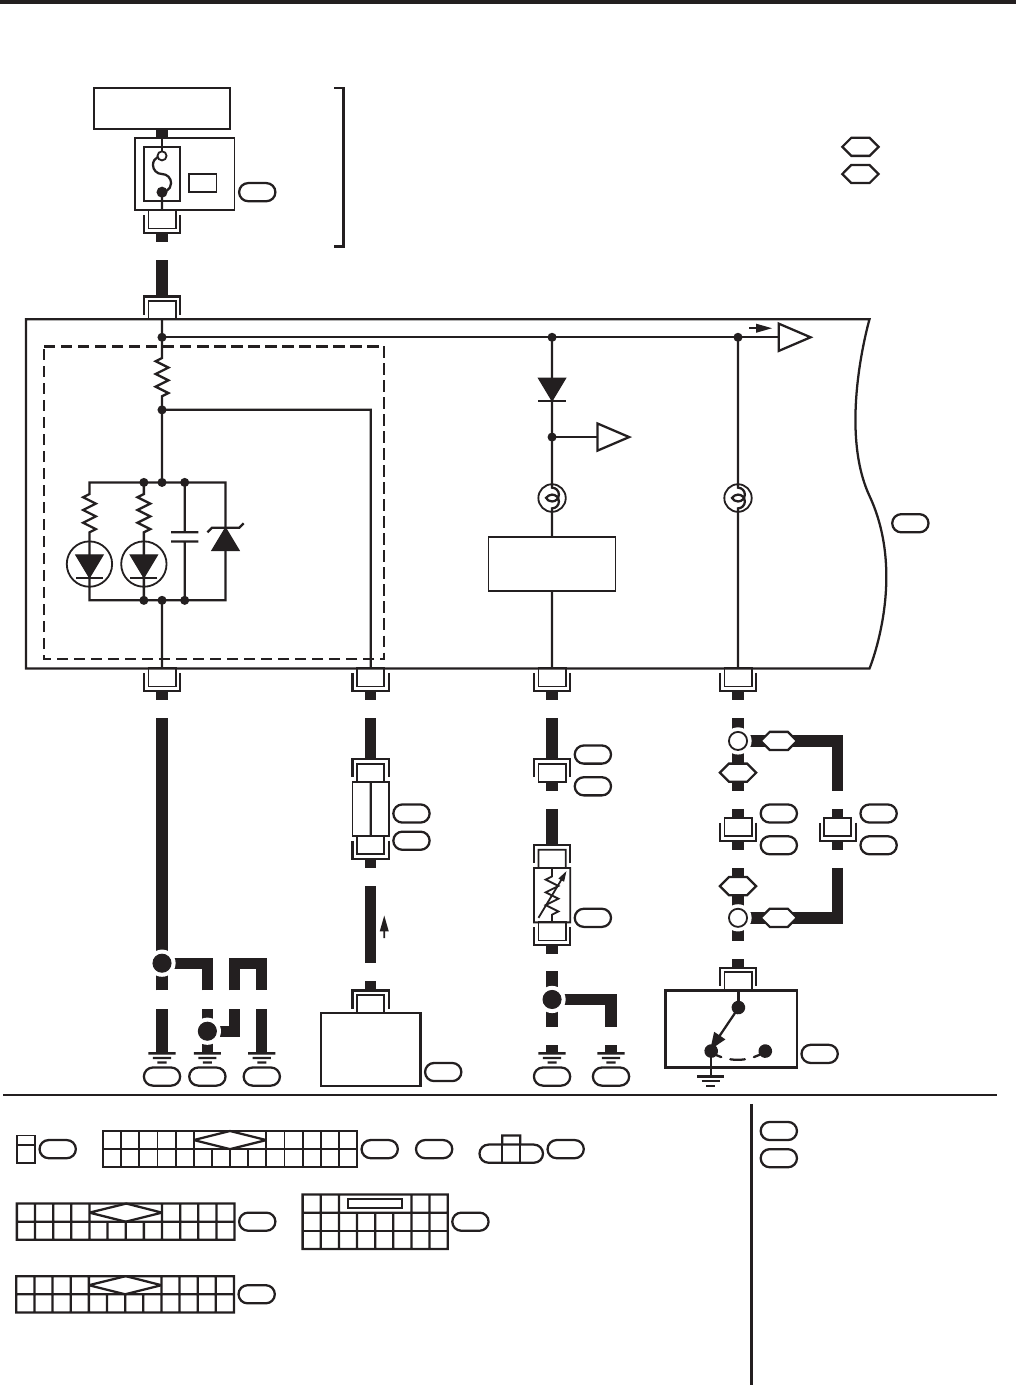 Nissan Primera Fuse Box Diagram List Of Schematic Circuit Wiring For 1996 Quest P11 Workshop Manual 2000 9 Pdf Rh Manuals Co